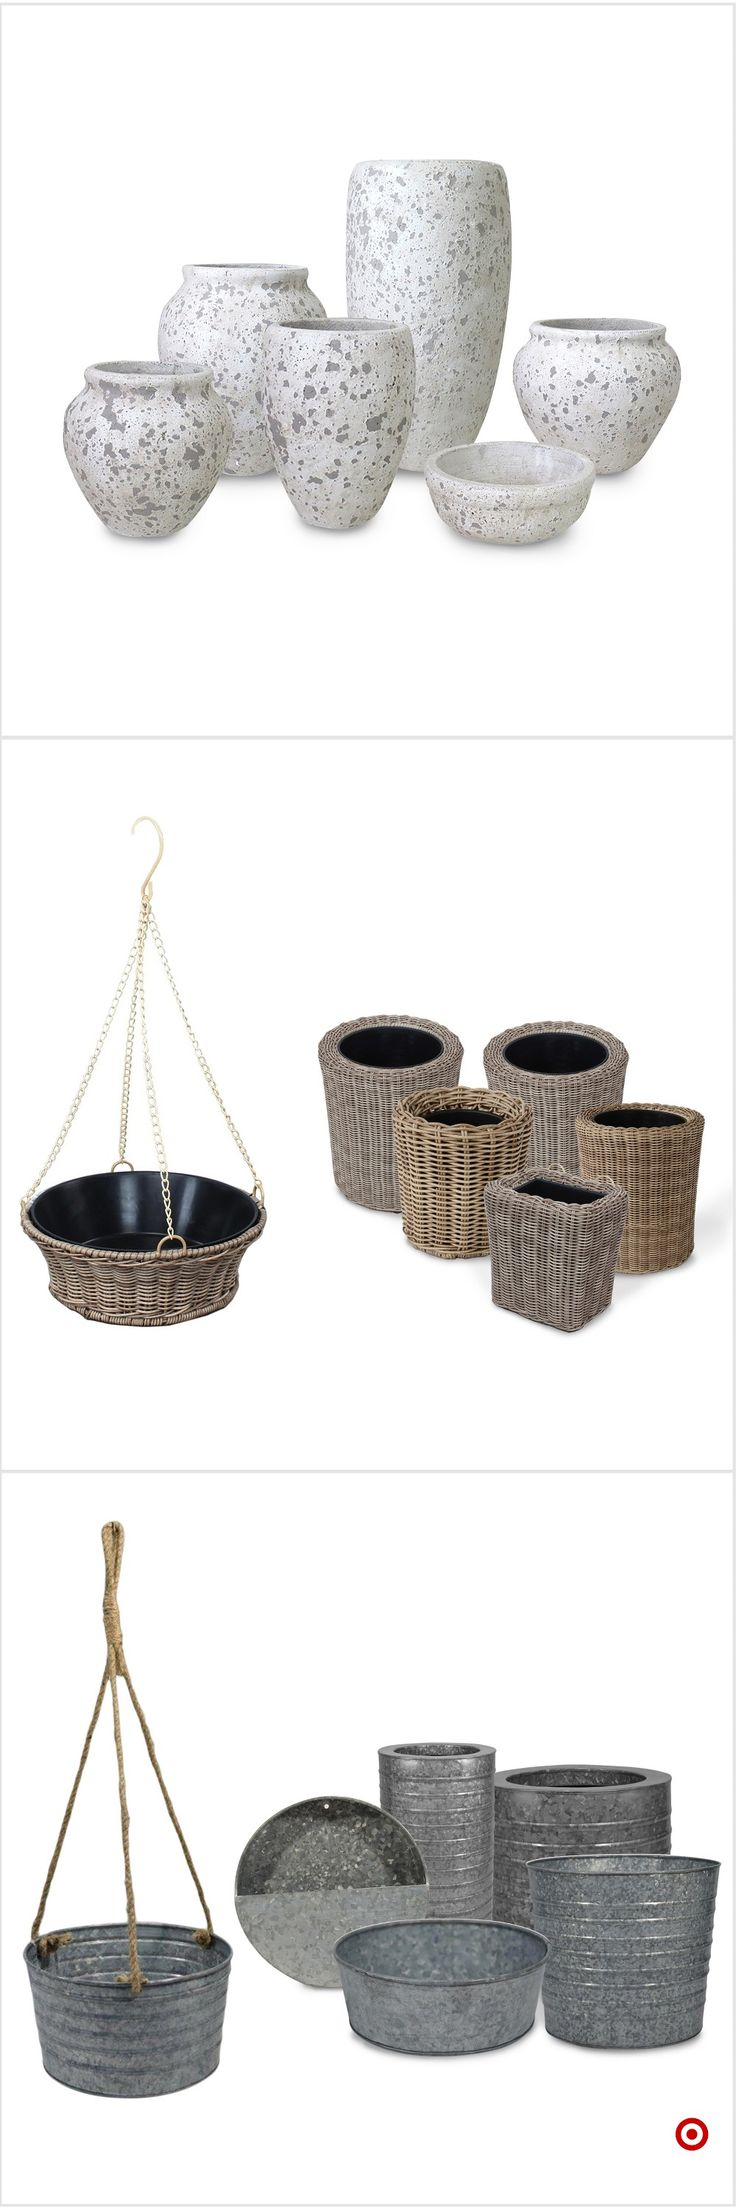 Shop Target for garden protector you will love at great low prices. Free shipping on orders of $35+ or free same-day pick-up in store.